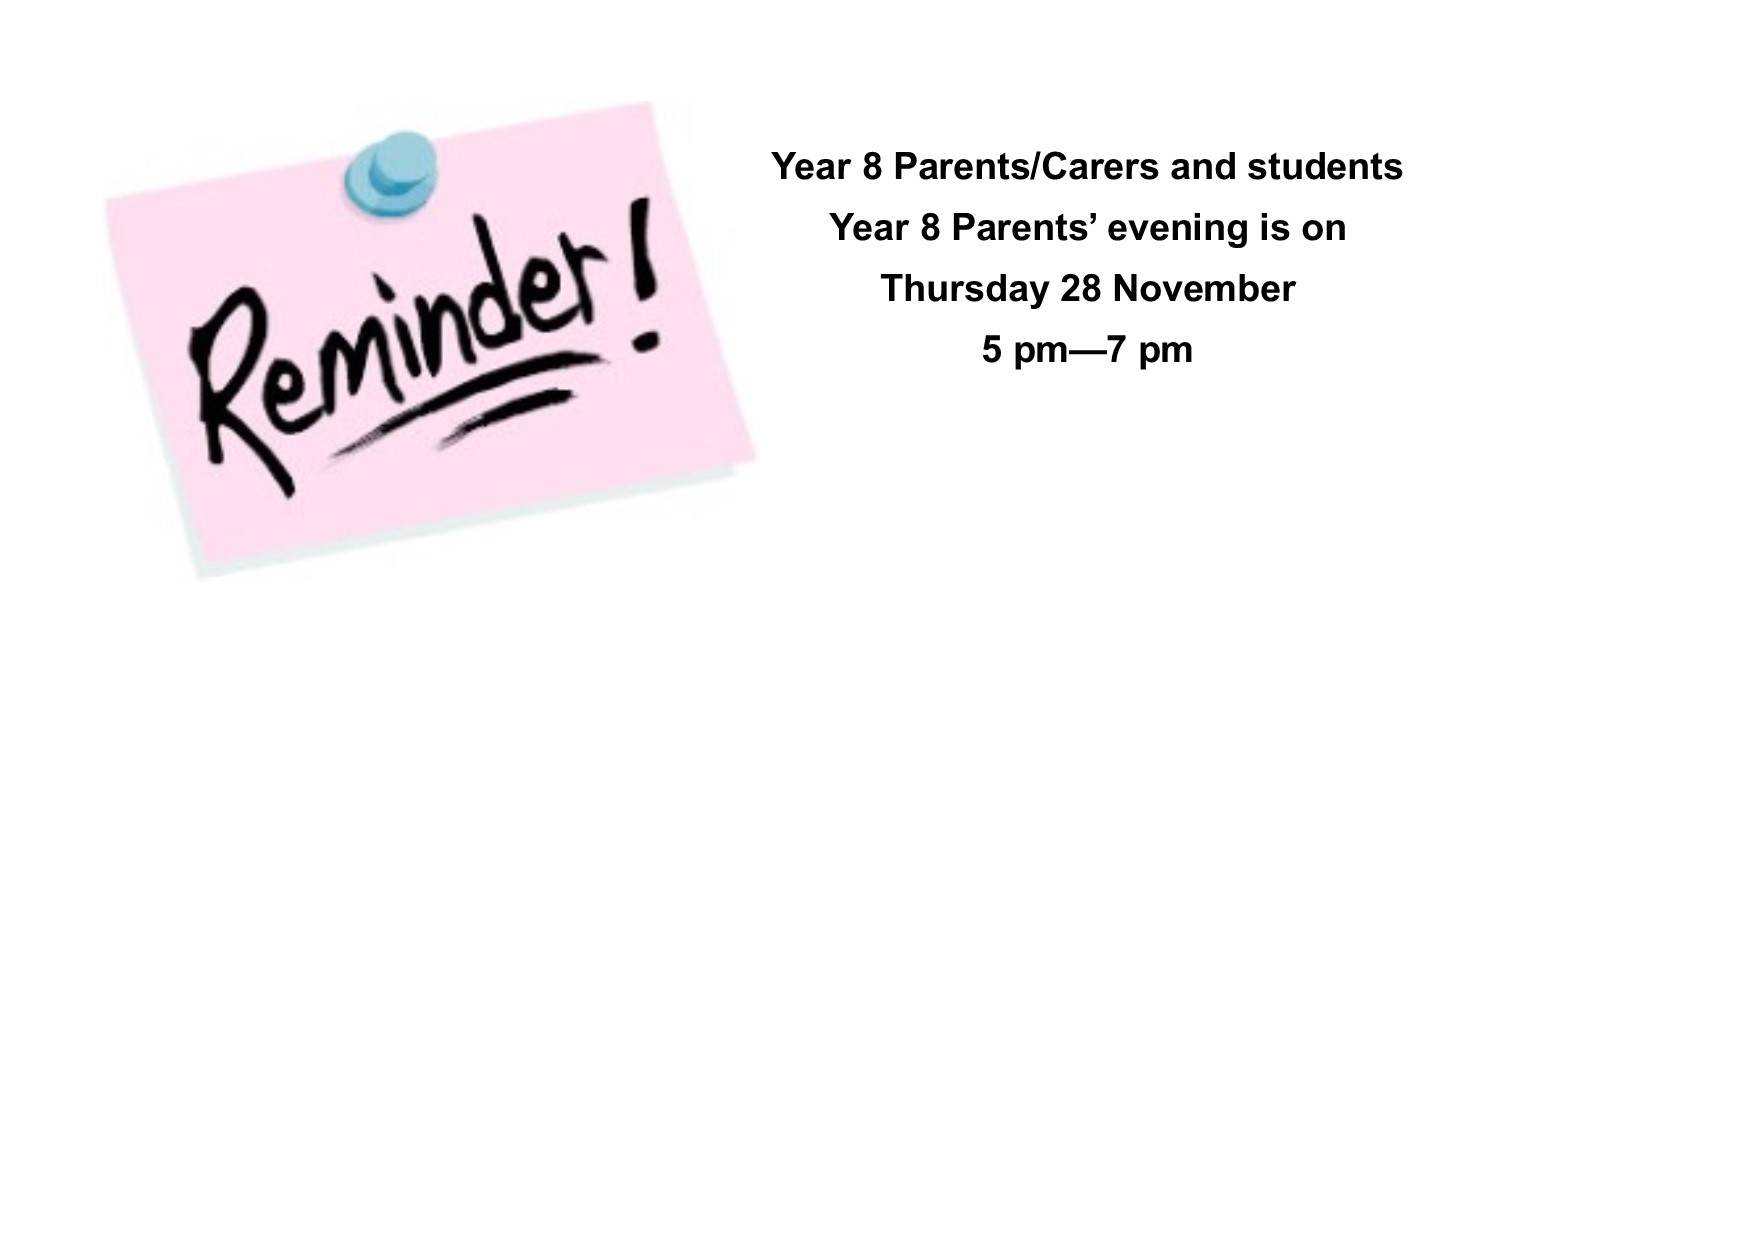 Year 8 Parents/Carers & students .... Parents' evening is 28 November